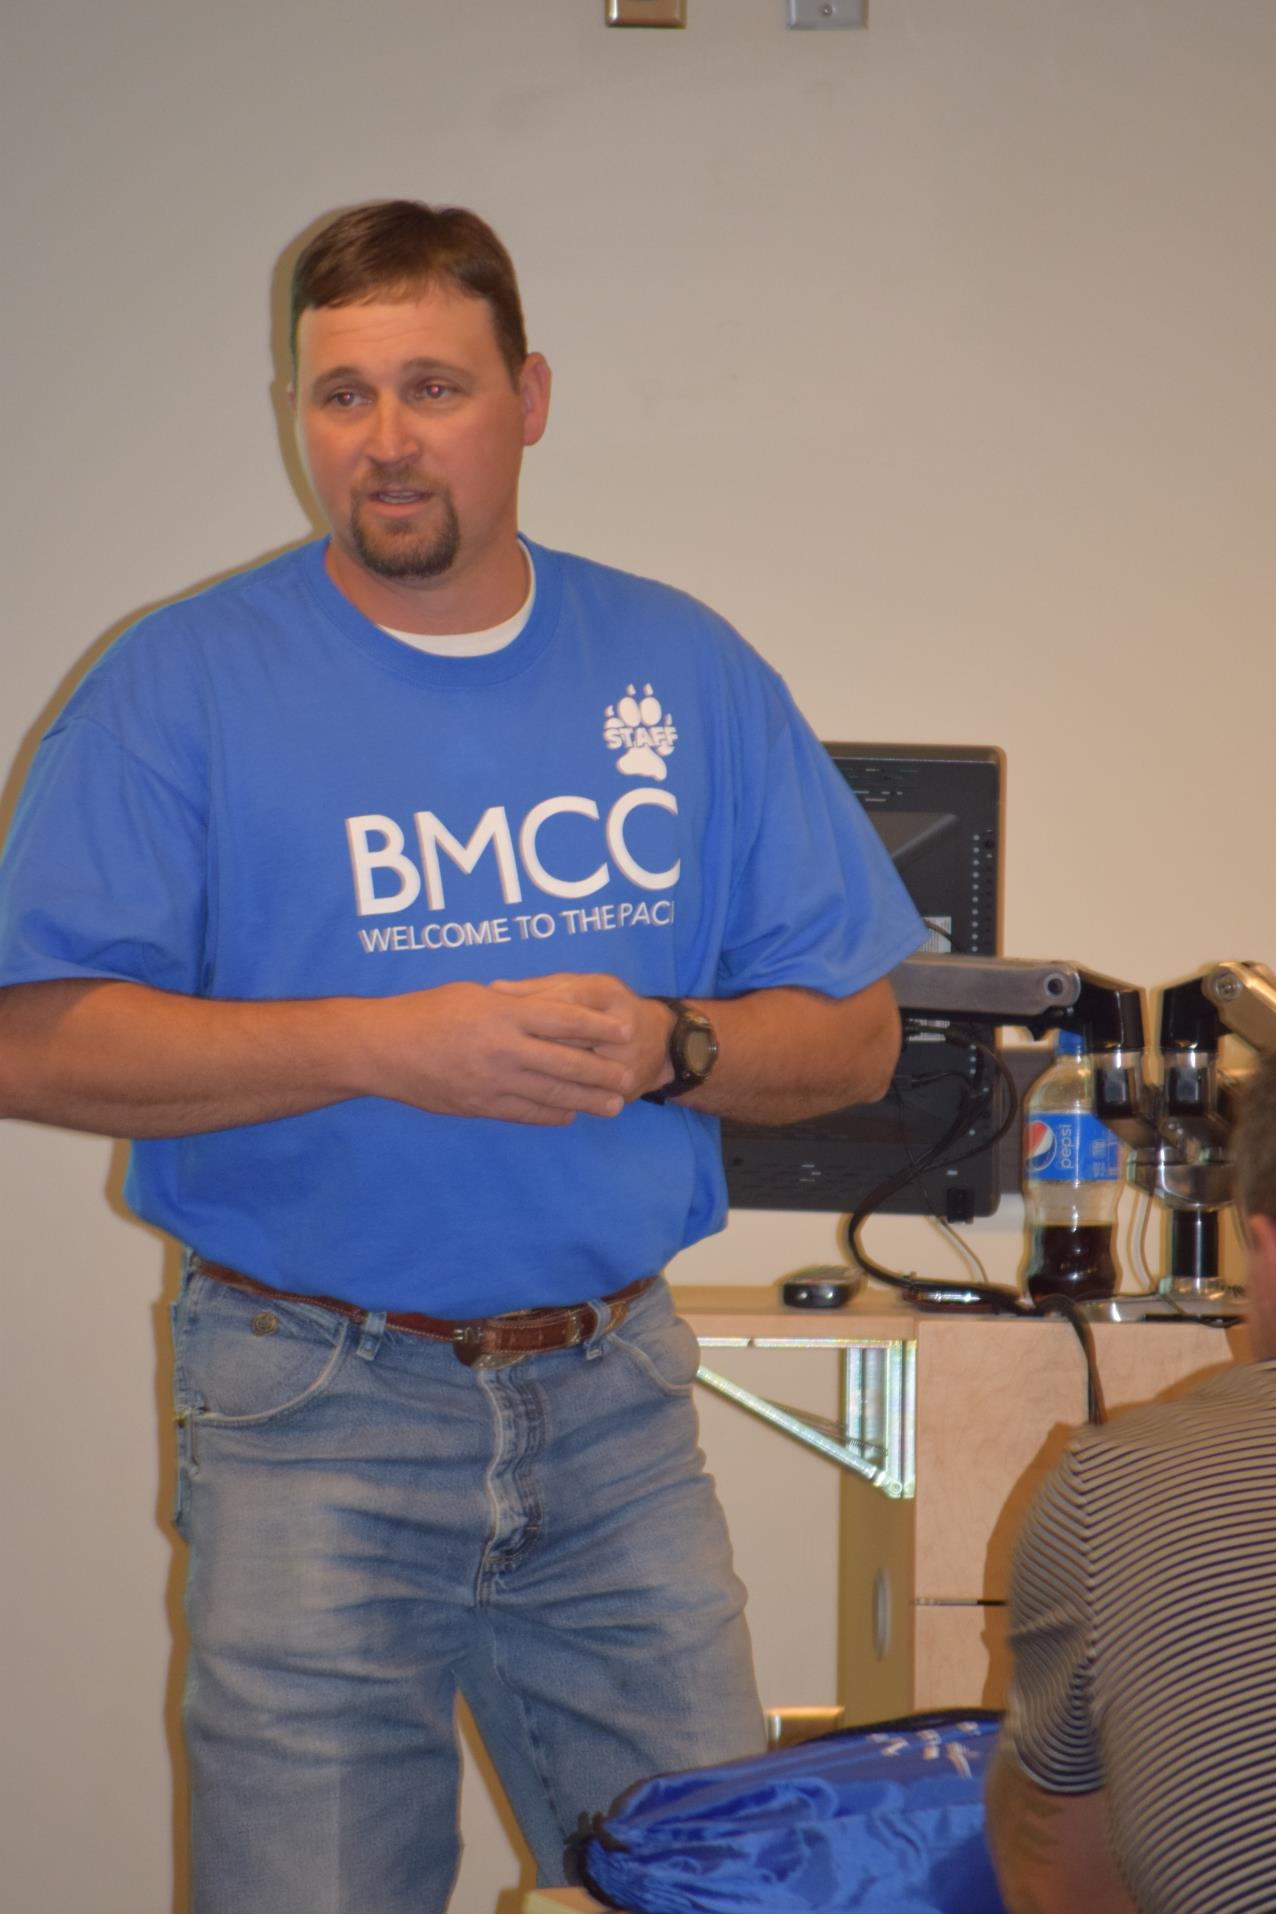 Nick Nelson, BMCC Ag instructor, leading one of the classroom experience classes.